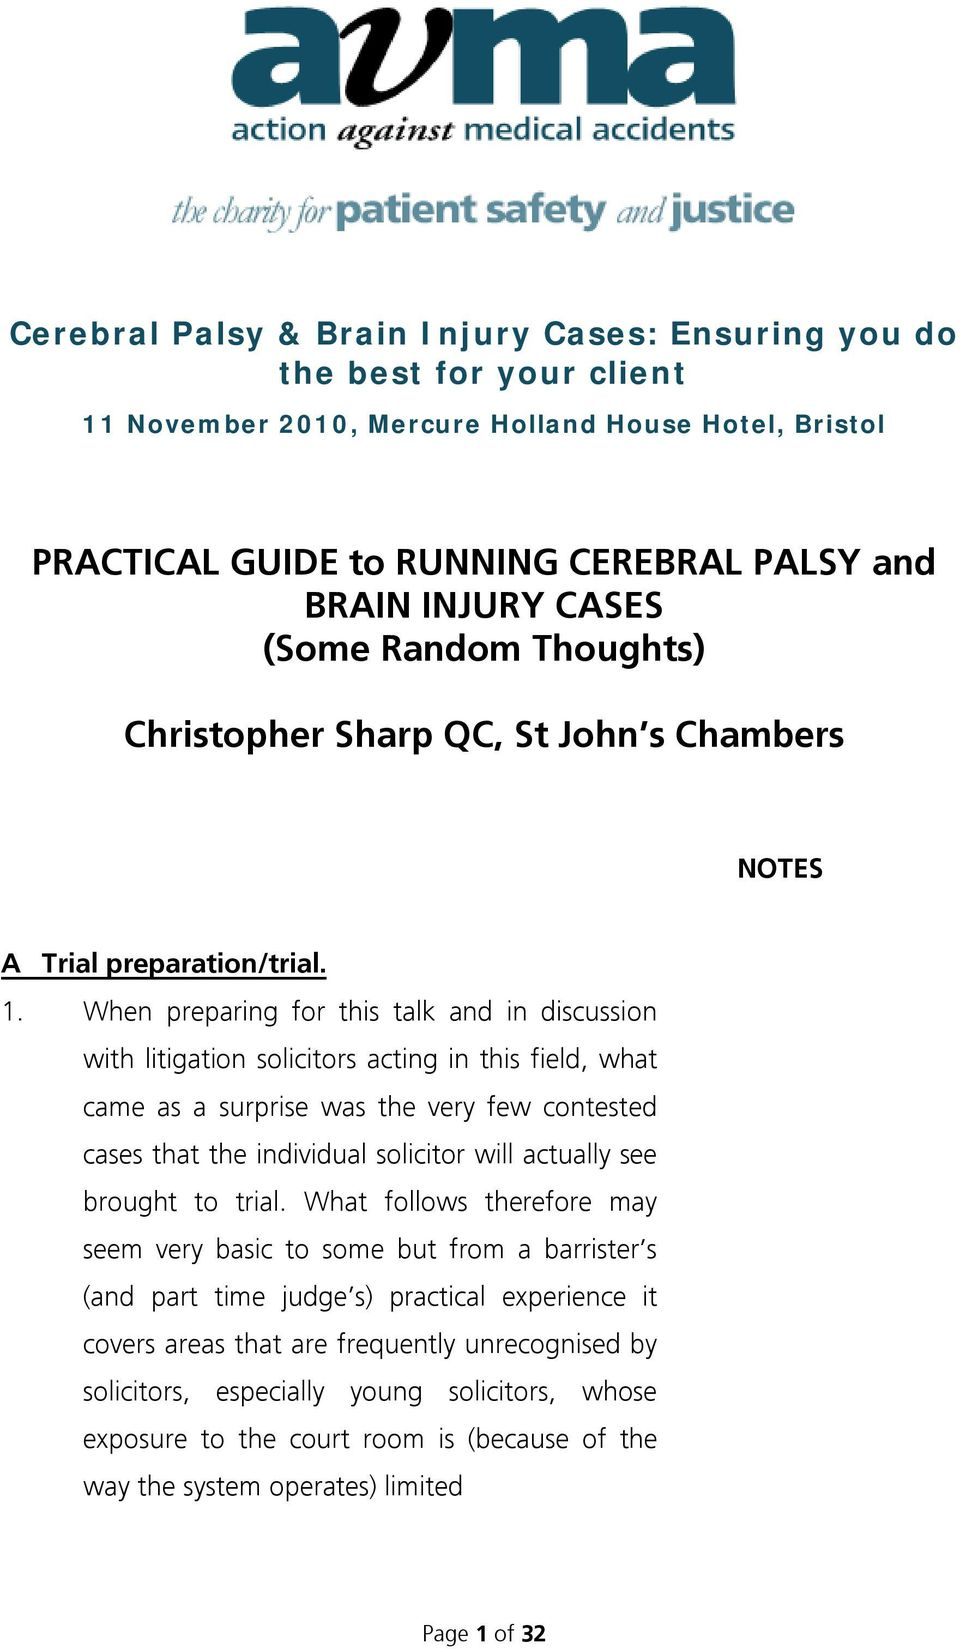 When preparing for this talk and in discussion with litigation solicitors acting in this field, what came as a surprise was the very few contested cases that the individual solicitor will actually